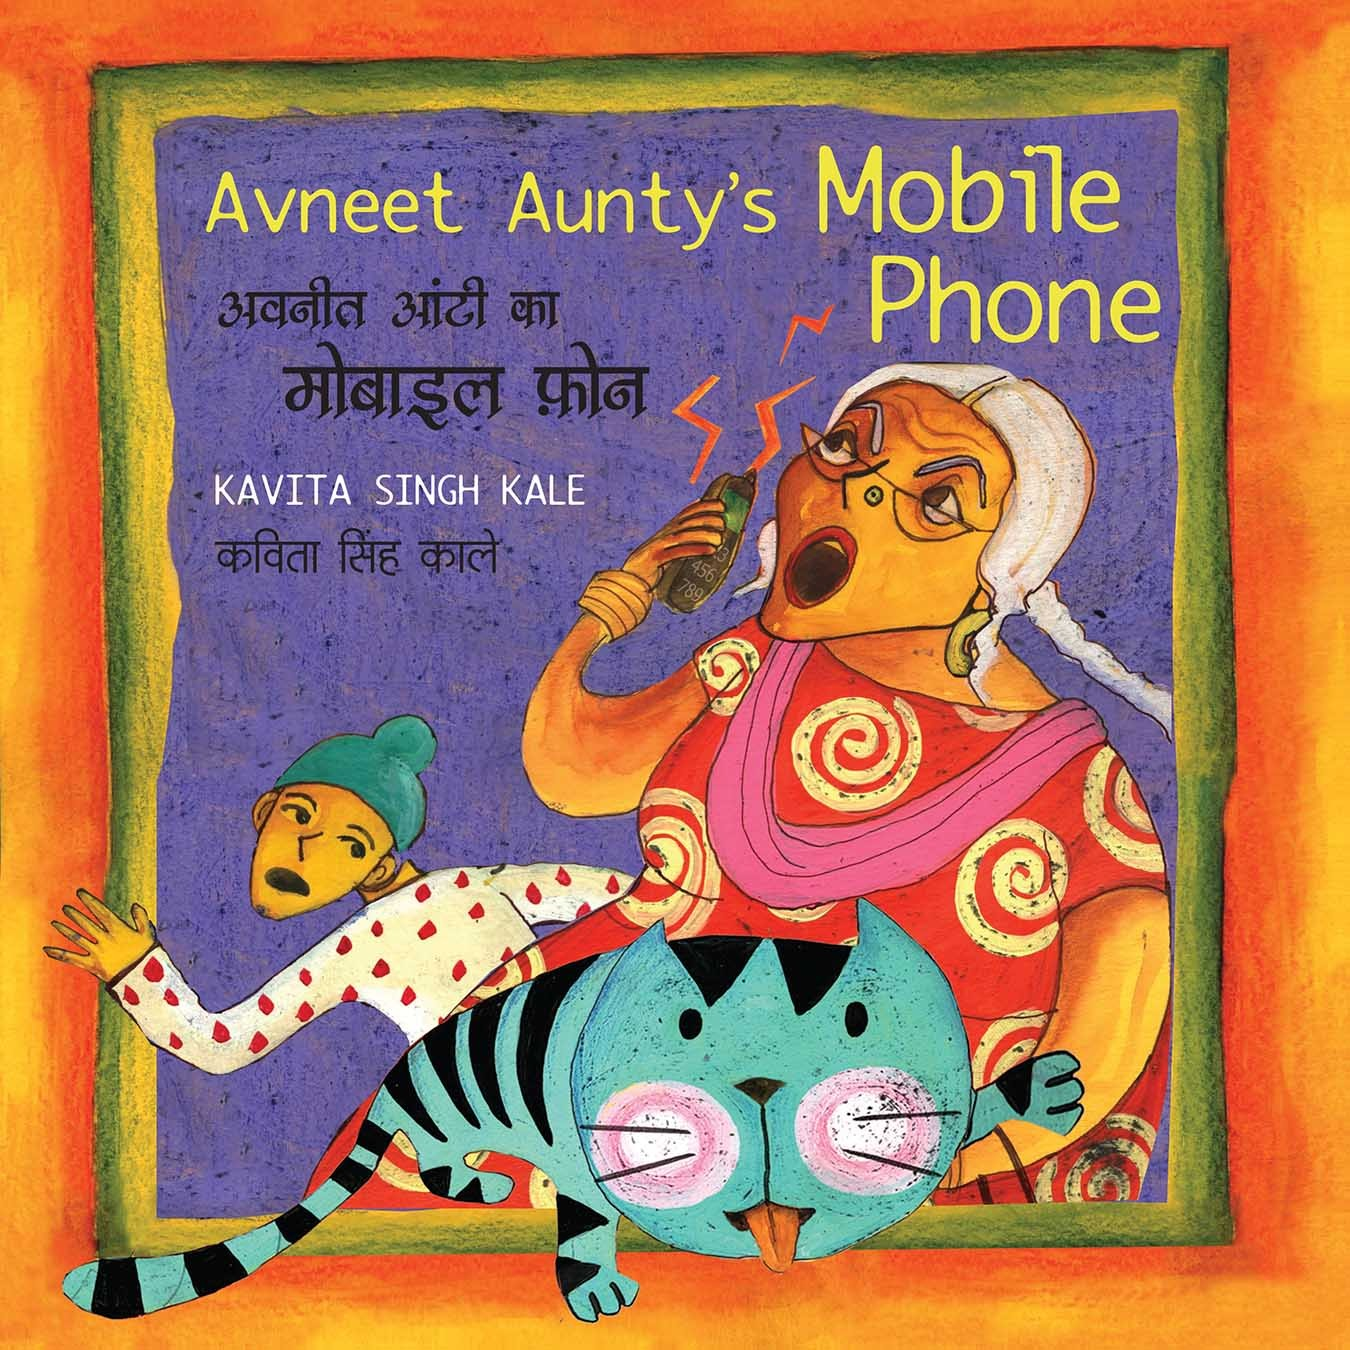 Avneet Aunty's Mobile Phone/Avneet Aunty Ka Mobile Phone (English-Hindi)